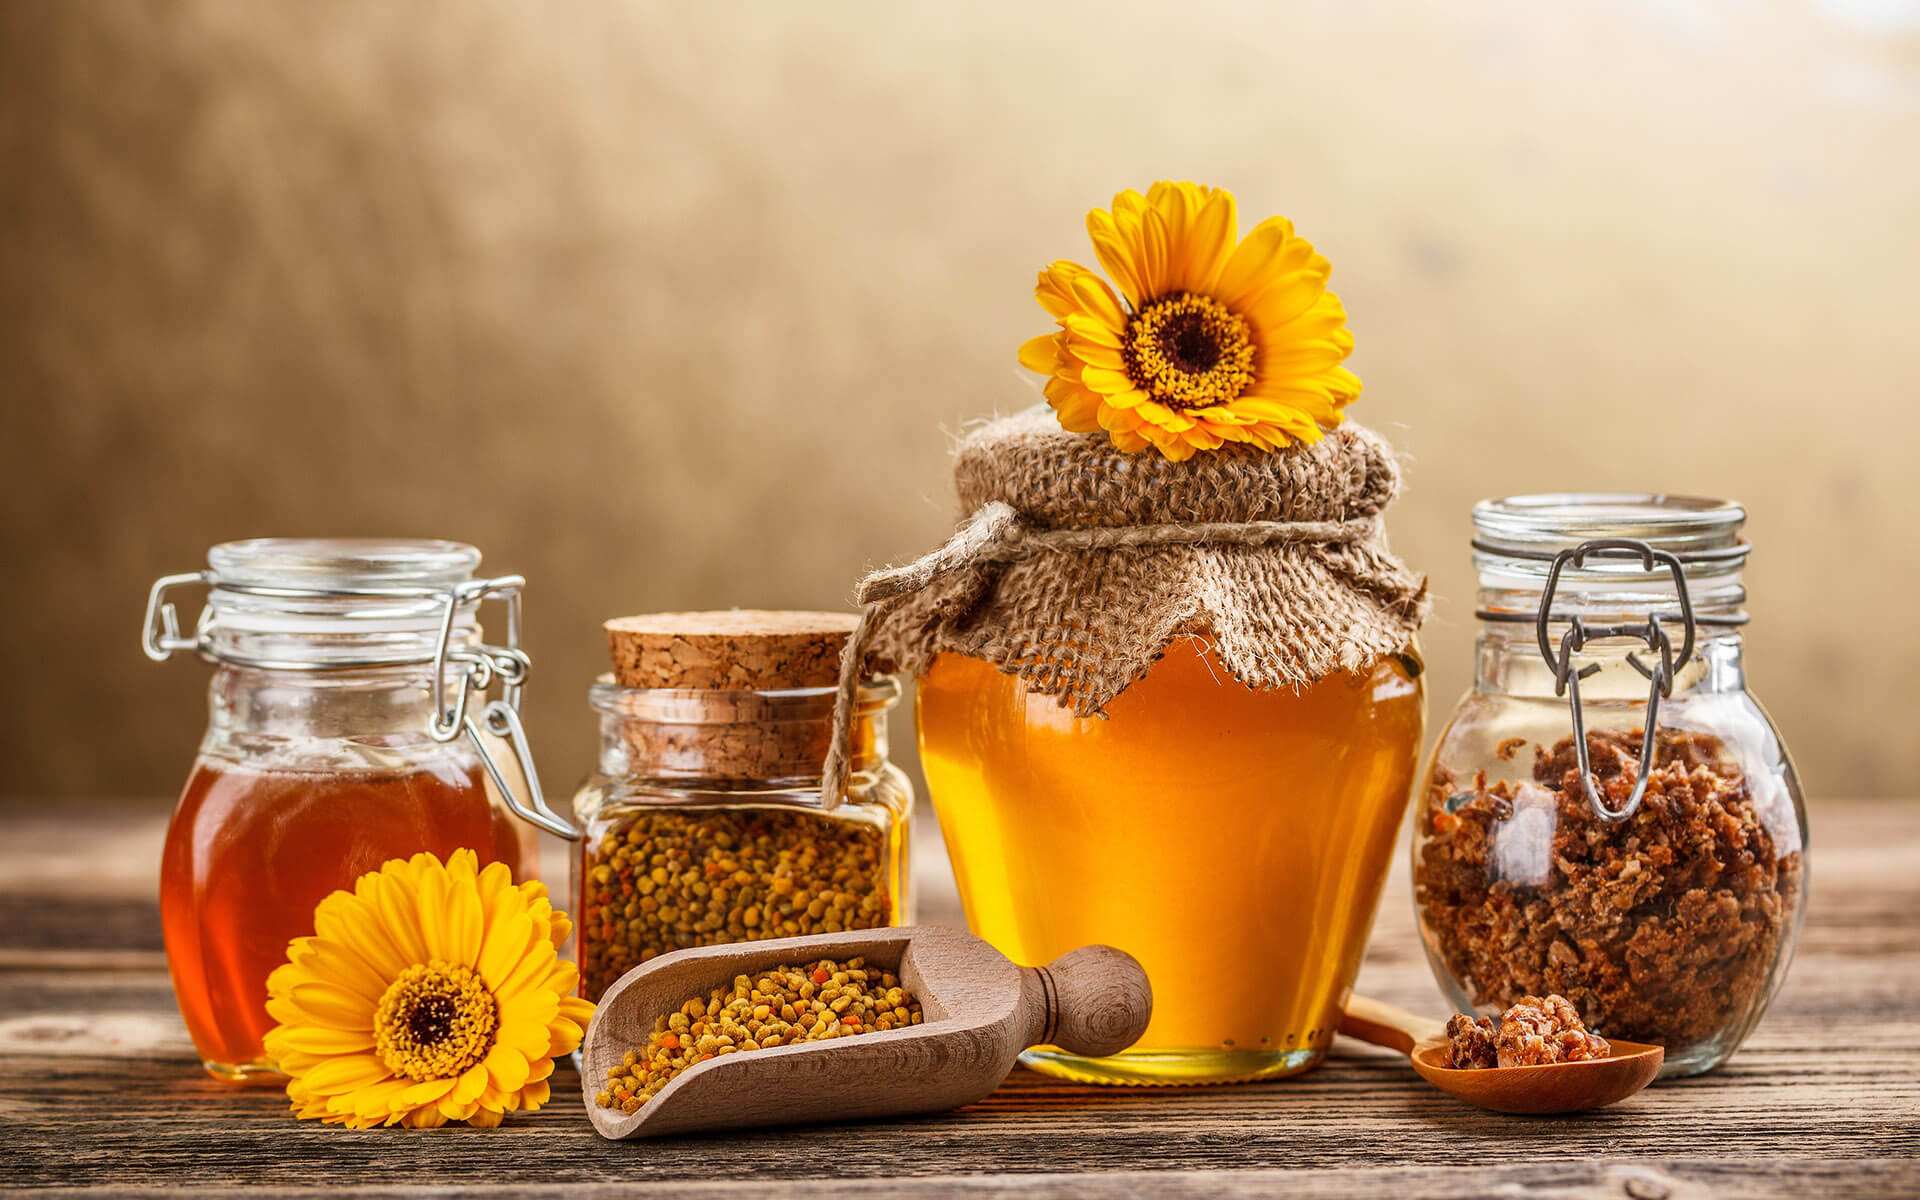 guide-to-croatian-sweets-organic-honey